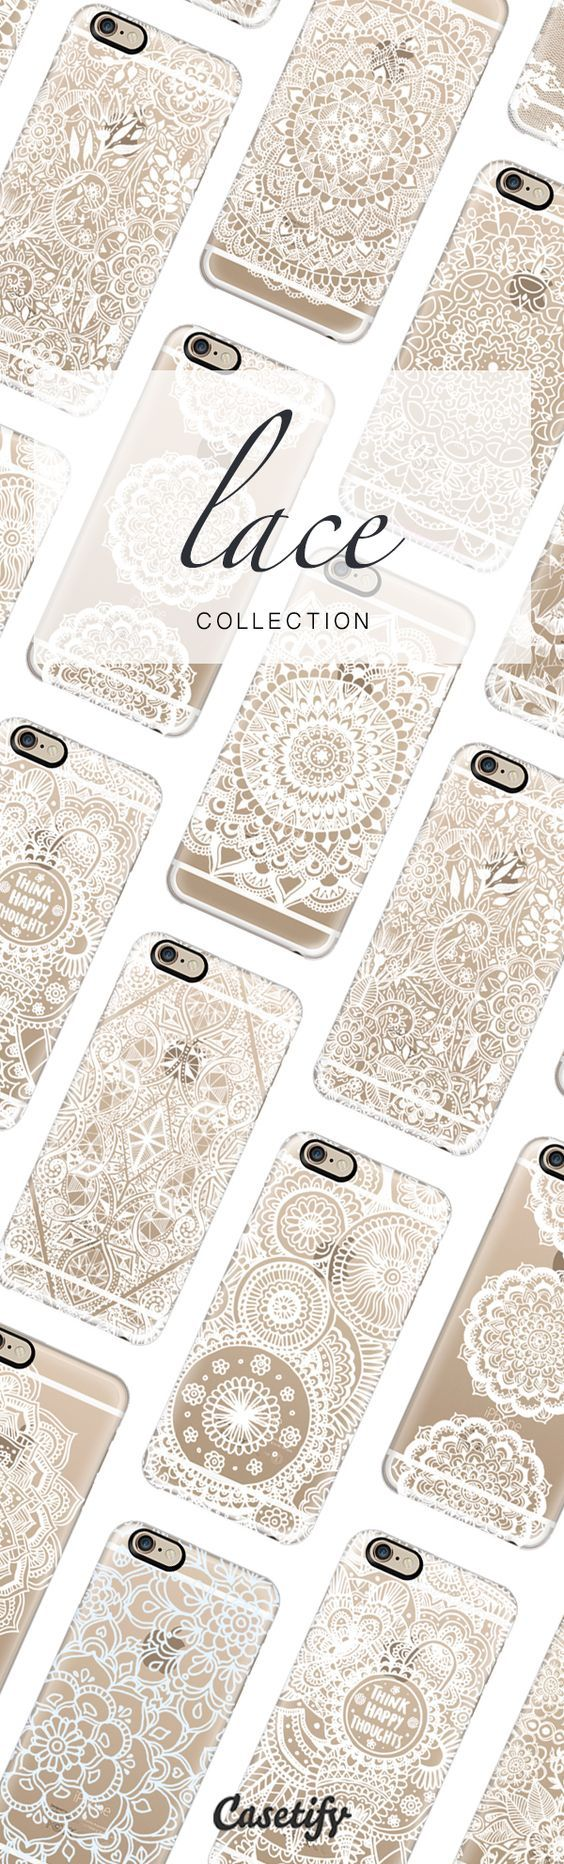 Let there be lace. Lace Phone Case